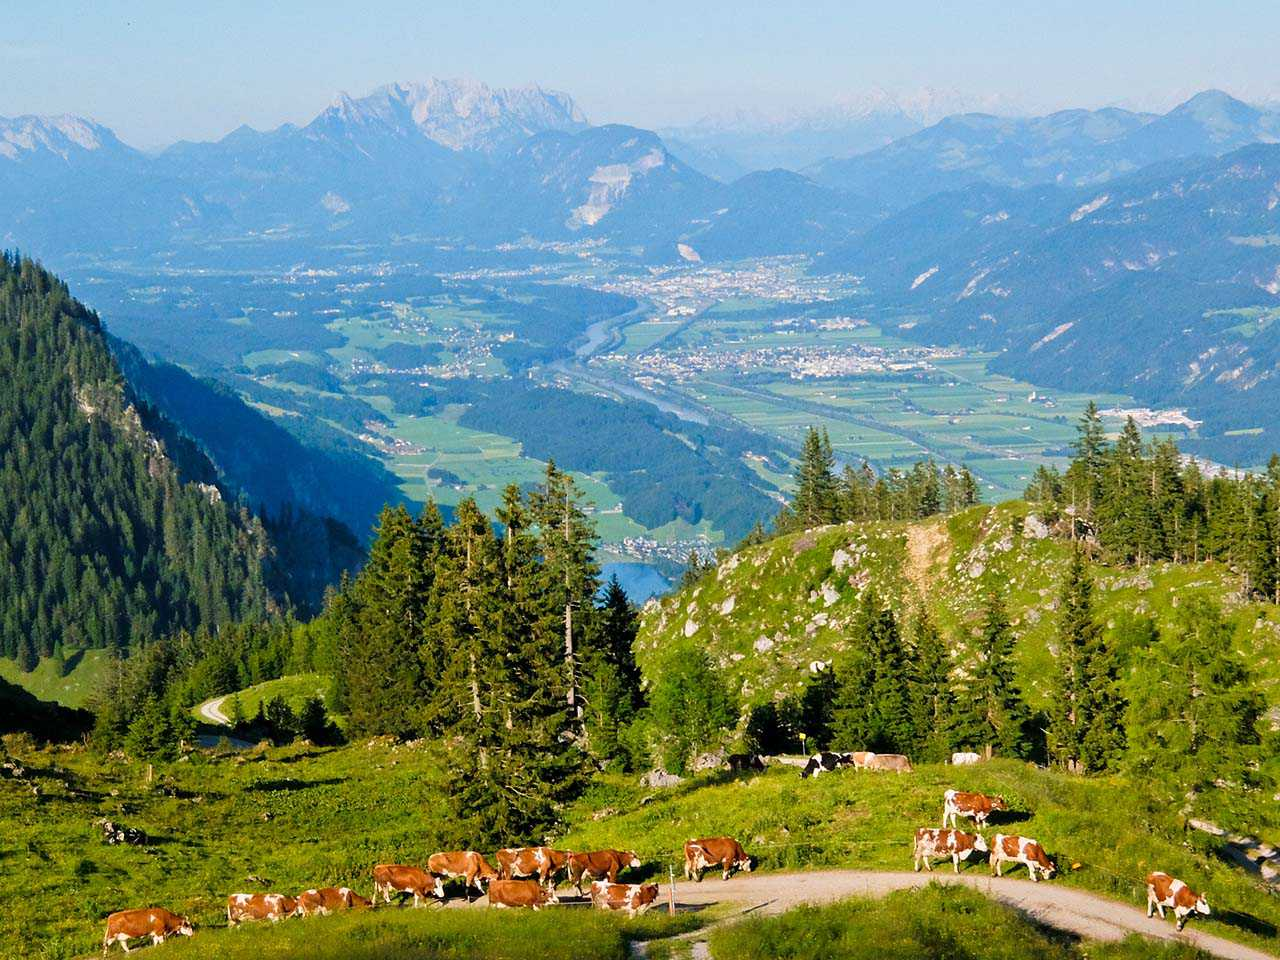 Brandenberg Alps, Tyrol - View from Bayreuther Hutte